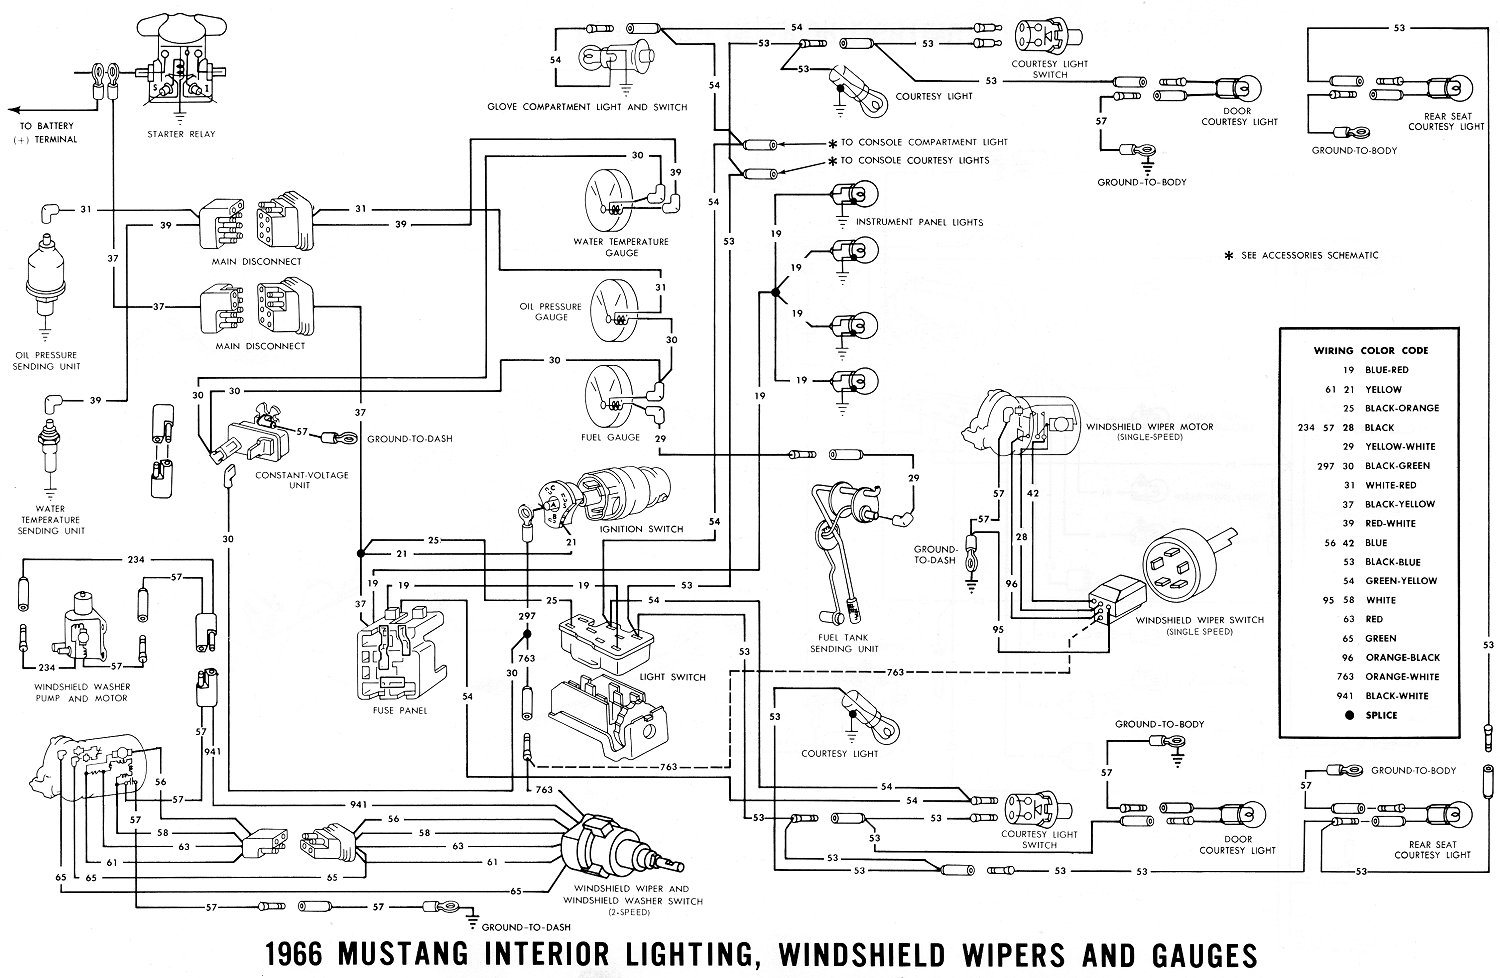 vintage mustang wiring diagrams rh midlife66 com 1965 mustang instrument panel wiring diagram 1965 mustang instrument panel wiring diagram